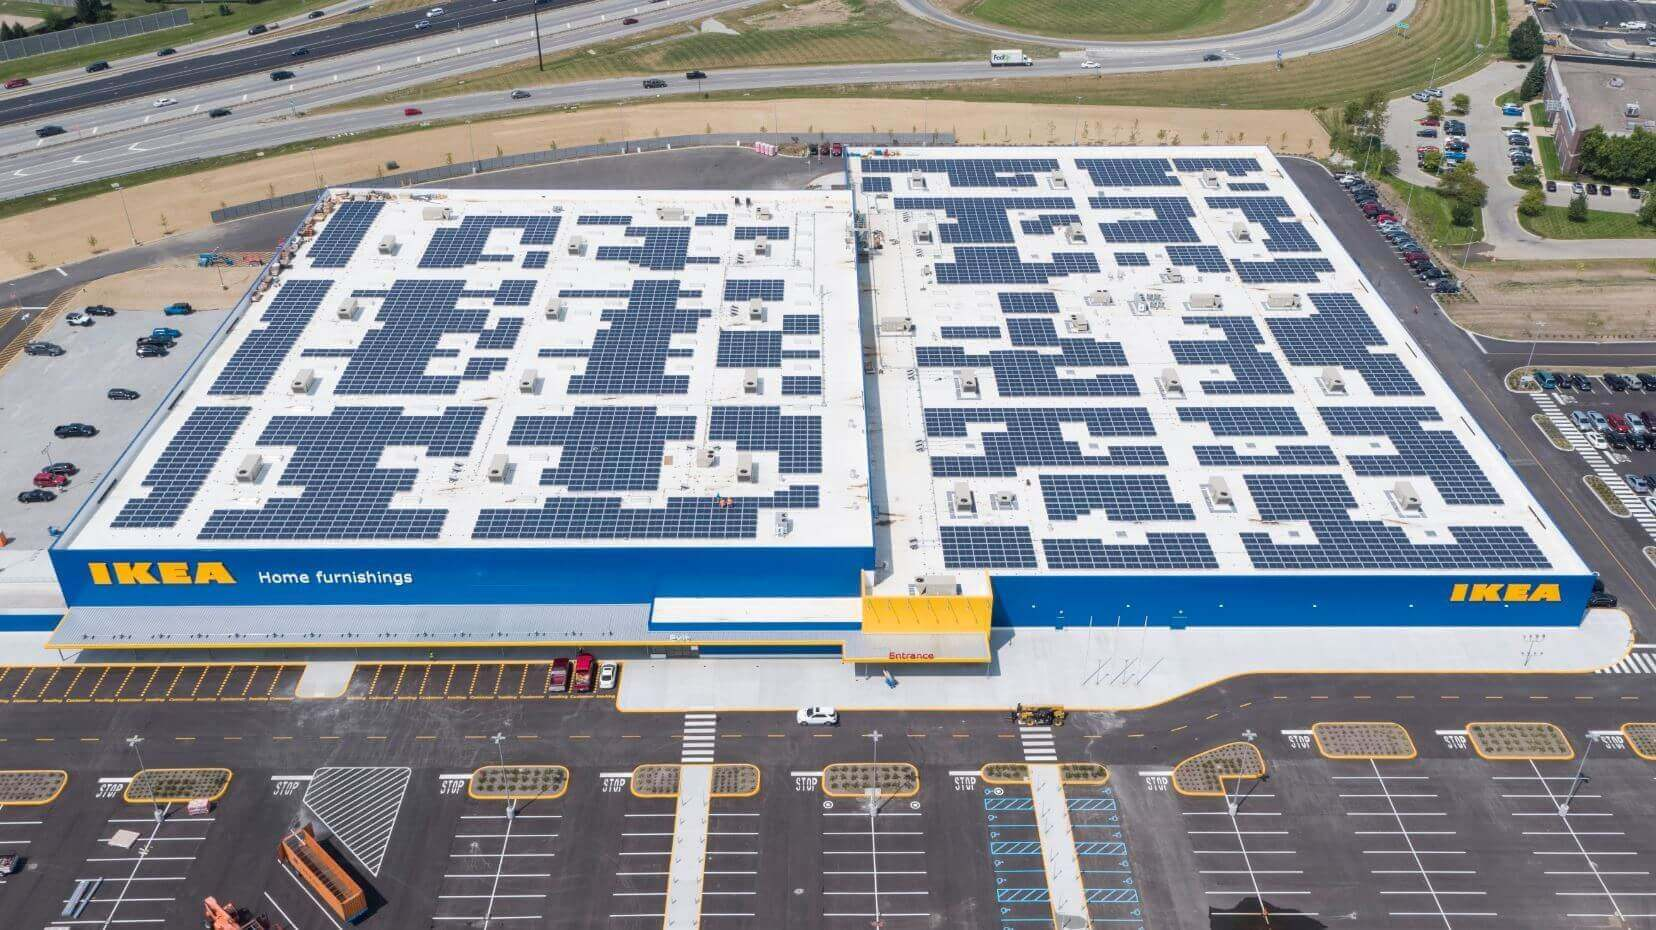 ikea wraps up mw solar project at new indiana store. Black Bedroom Furniture Sets. Home Design Ideas